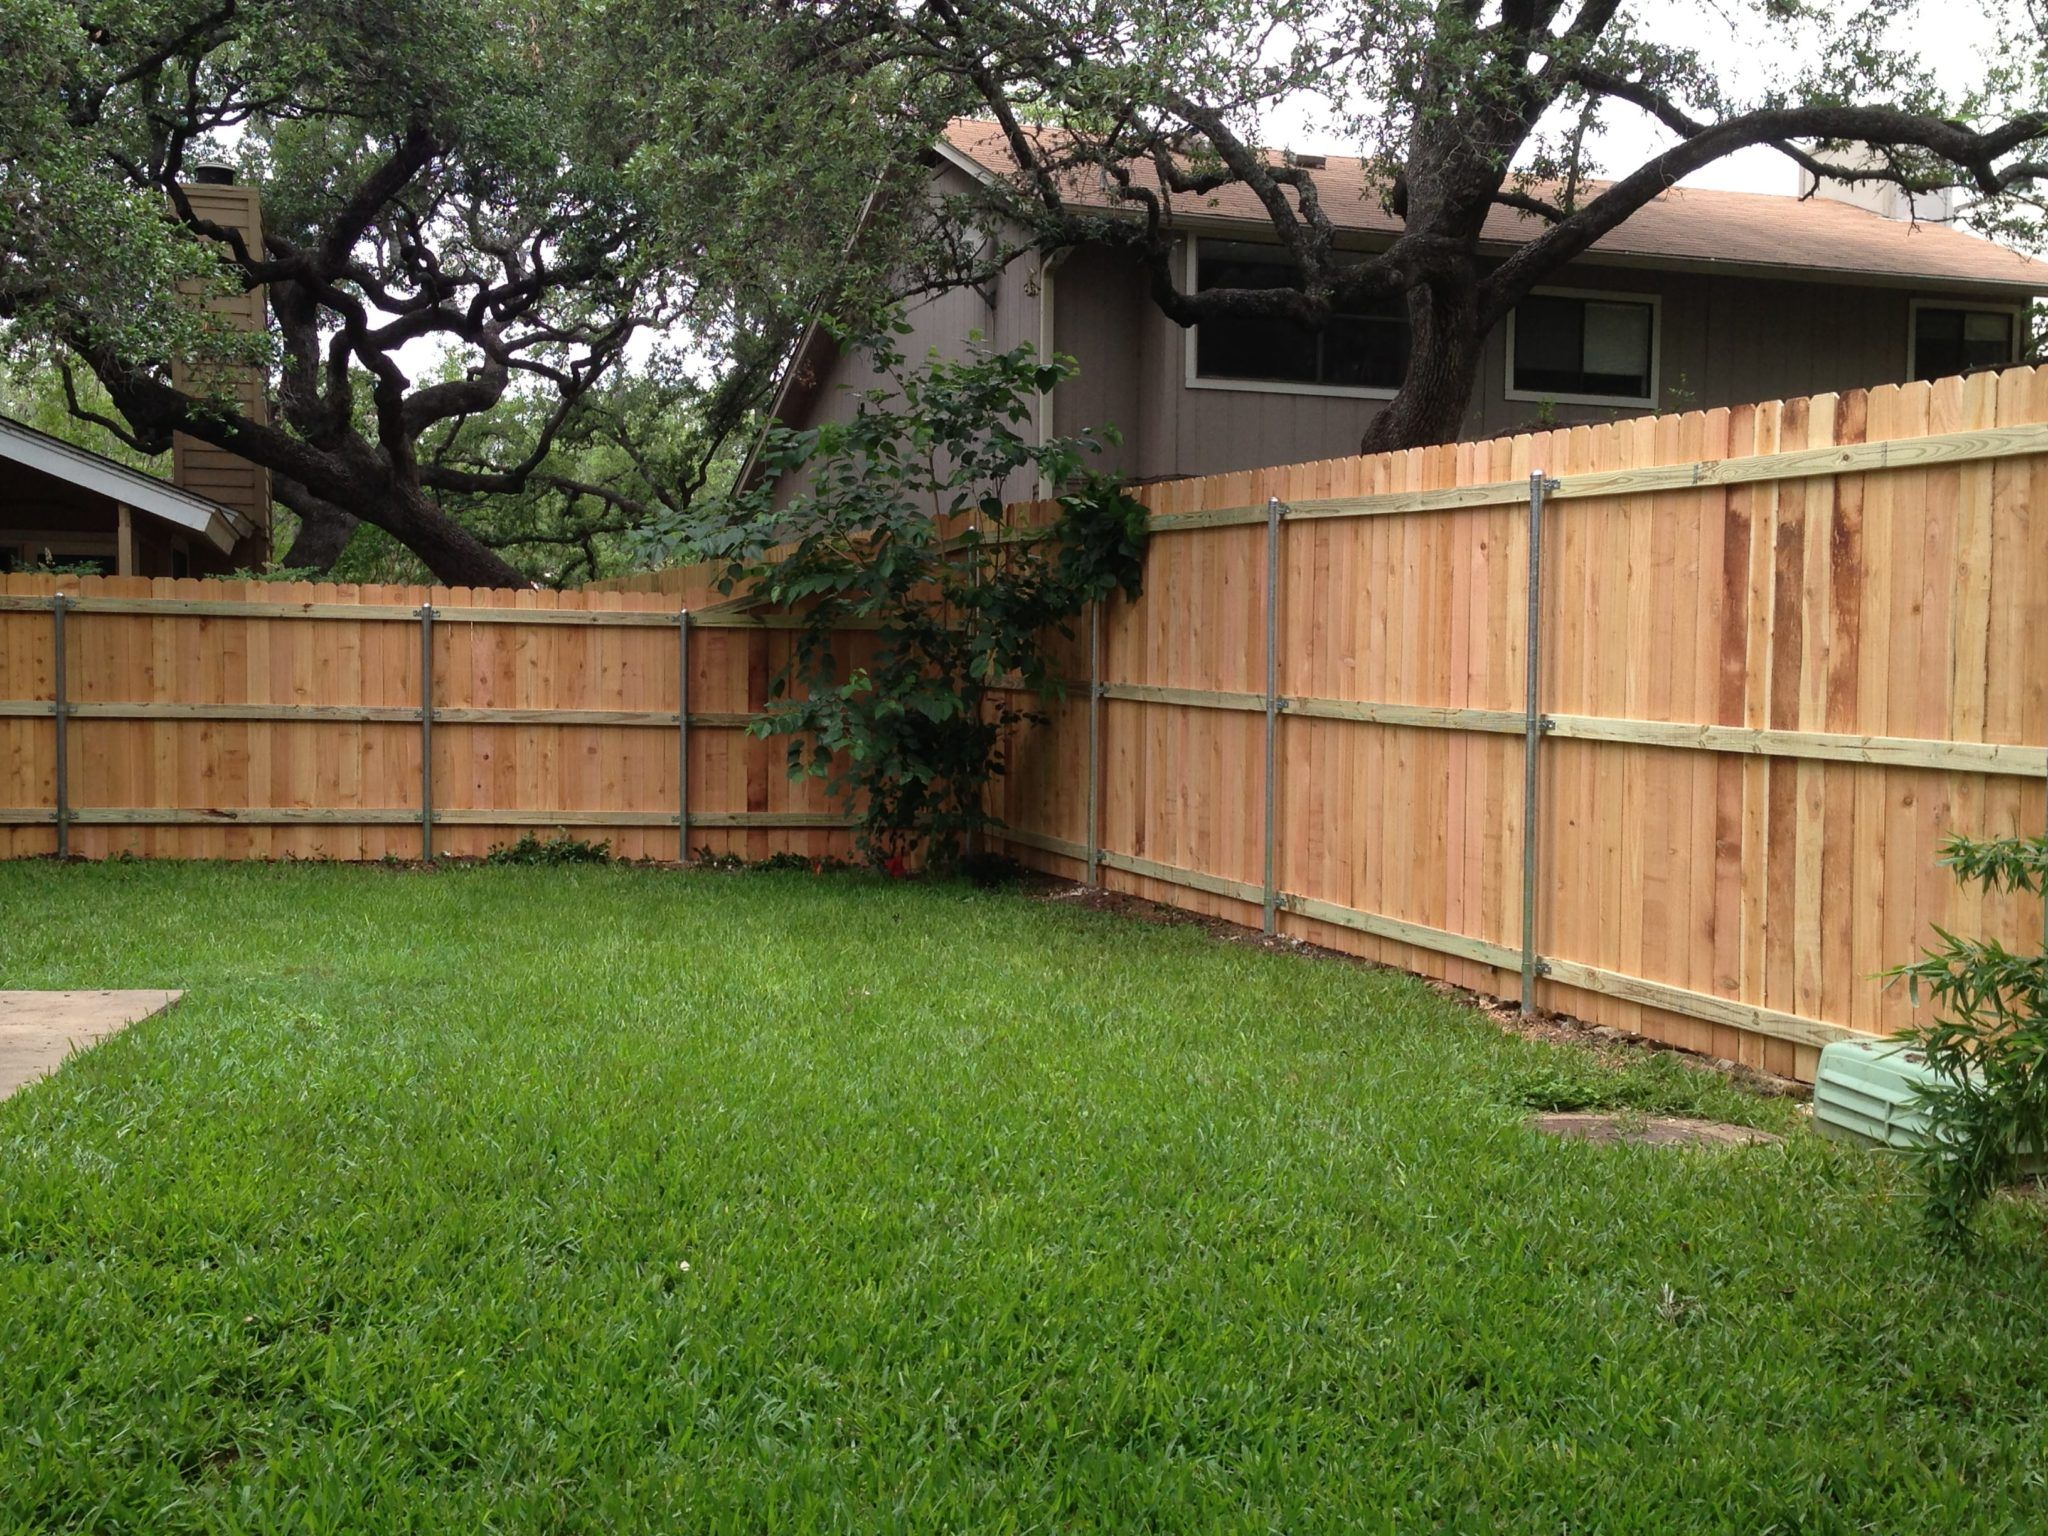 6 Foot To 8 Foot Privacy Fence On Steel Posts